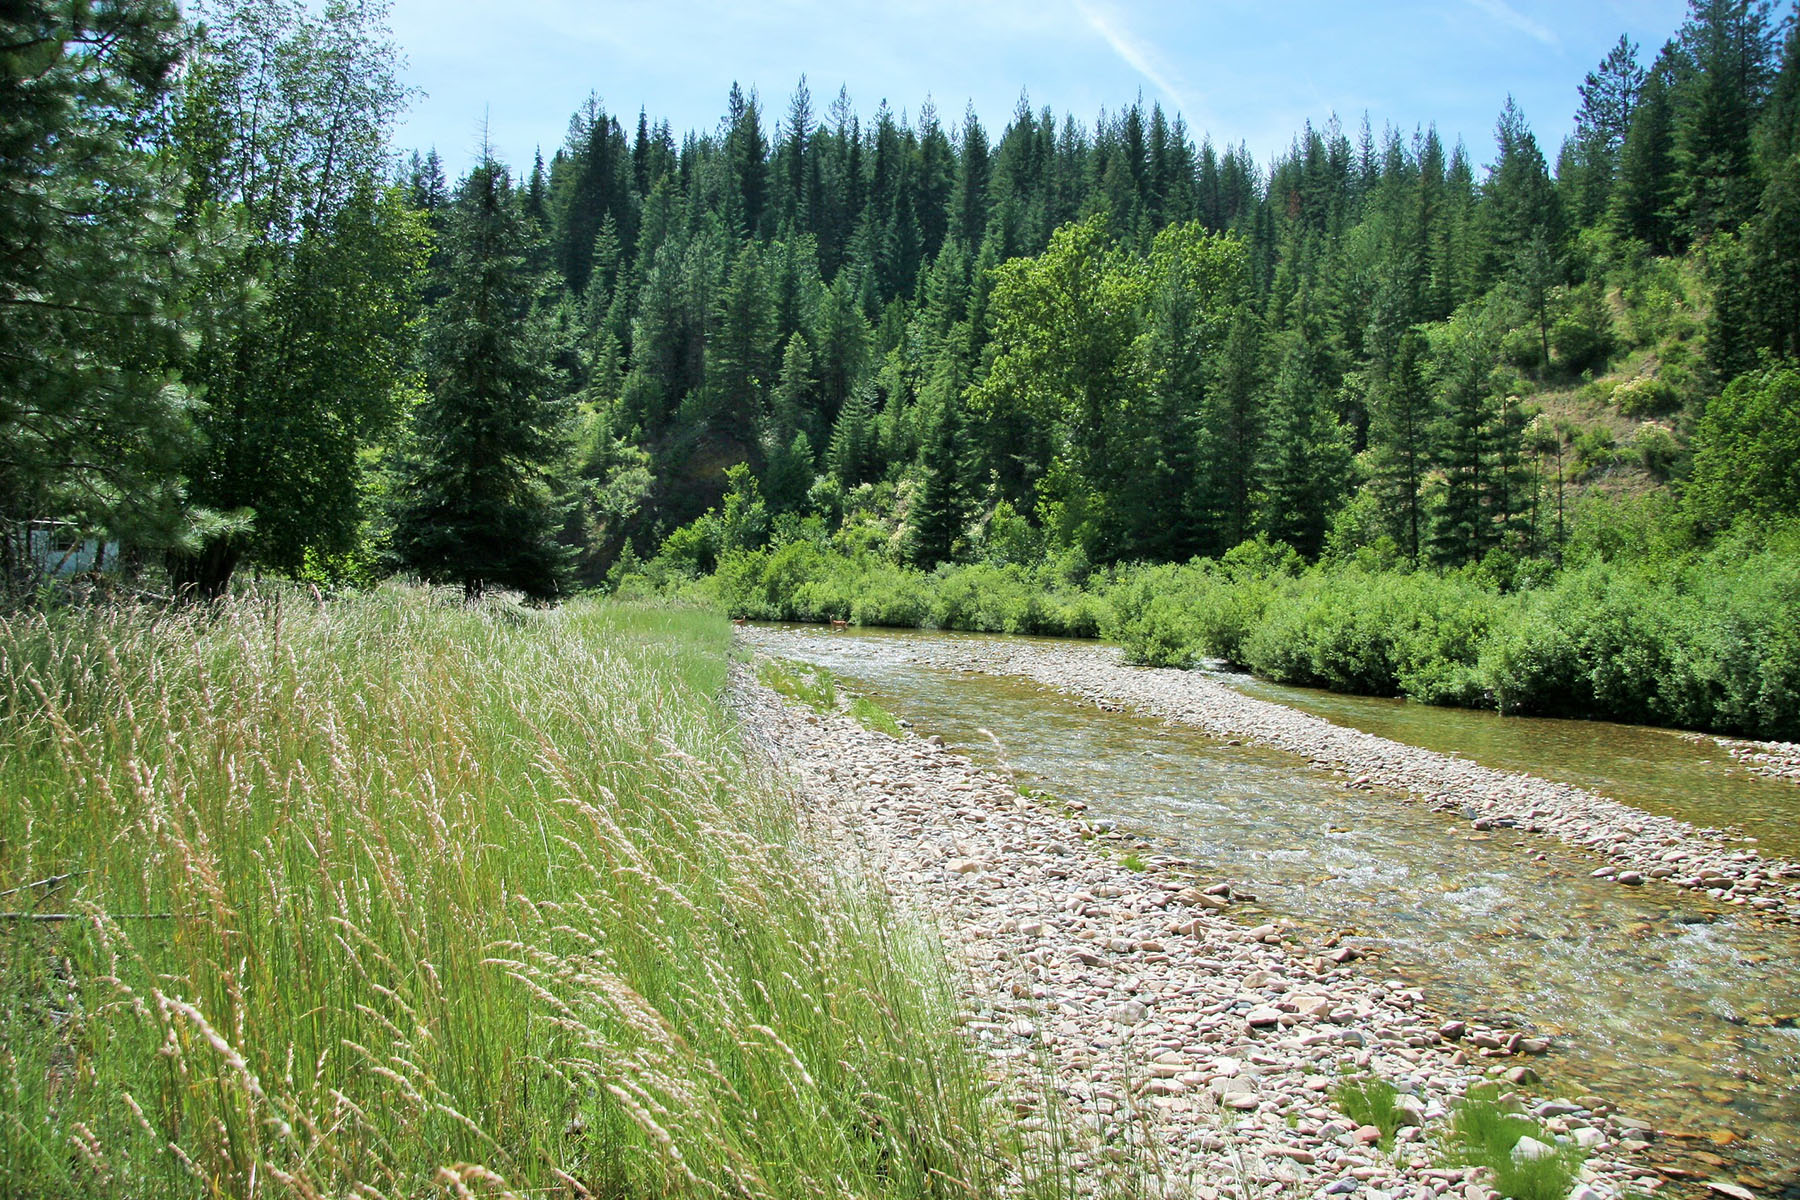 Terreno por un Venta en Appx 20 acres with over 600' of Pine Creek NNA 20 Pine Creek Rd Pinehurst, Idaho, 83850 Estados Unidos